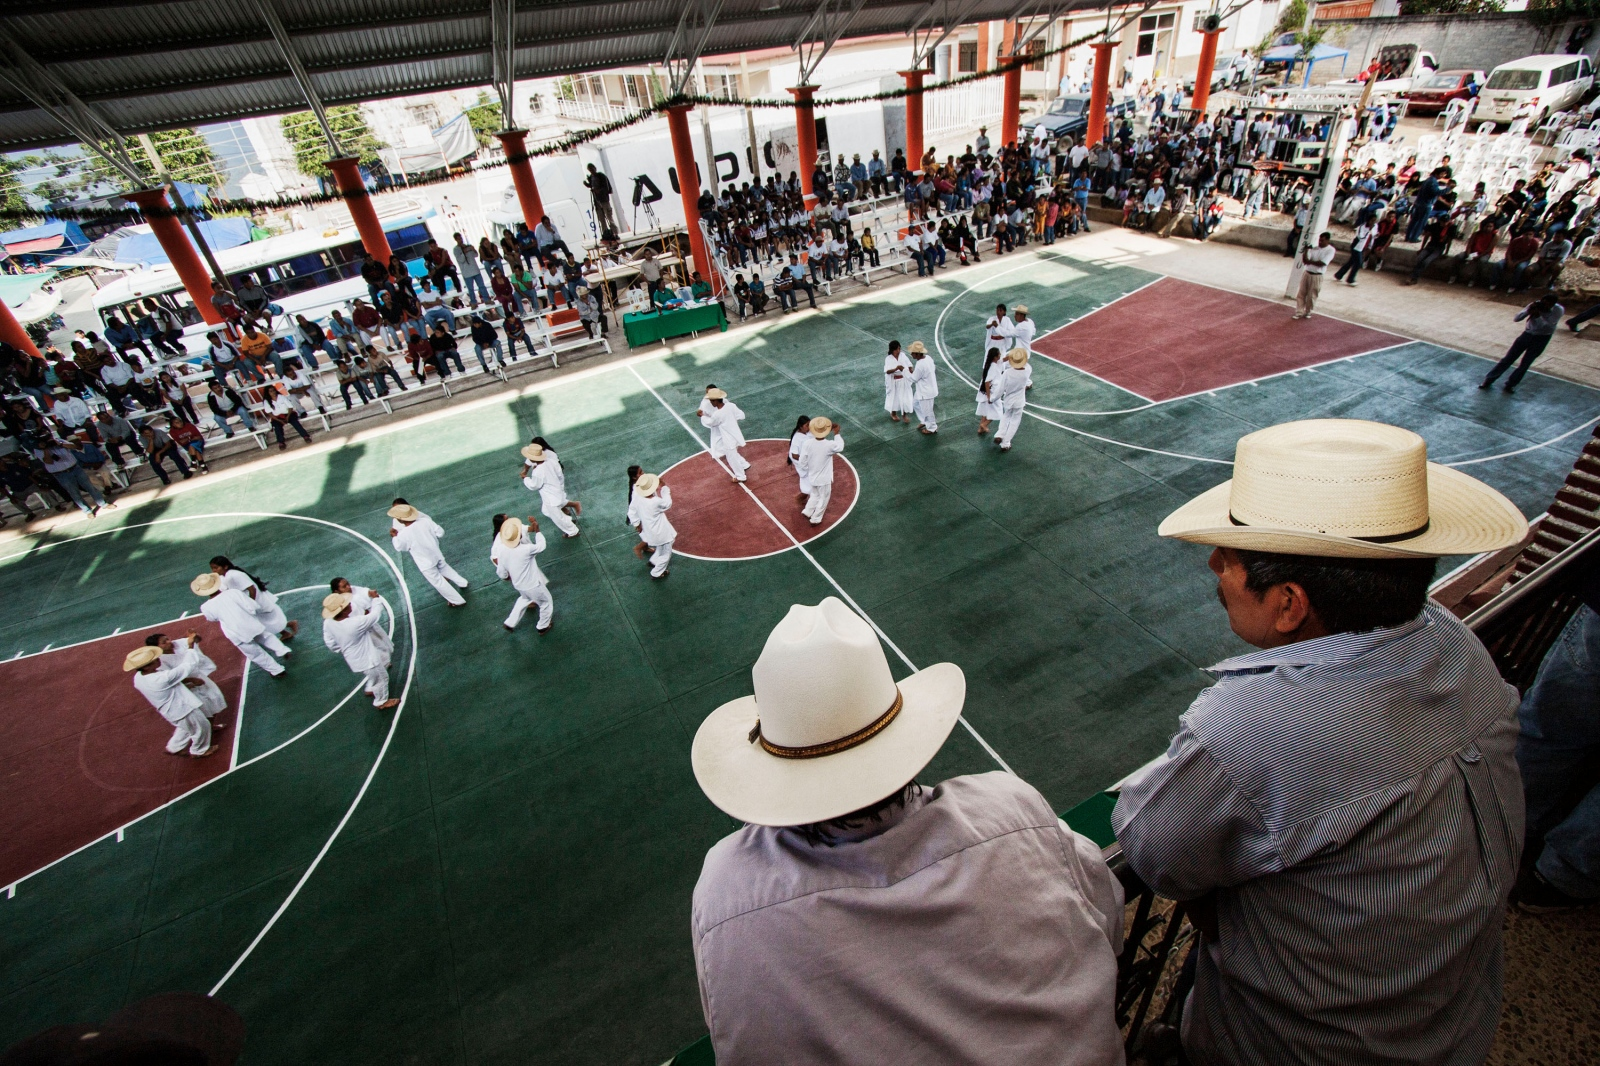 SAN CRISTÓBAL LACHIRIOAG, NOVEMBER 21, 2009. Young people from Lachirioag dance the sones y jarabes (folk dances) of the community during the inauguration of the tournament Copa Sierra Norte.